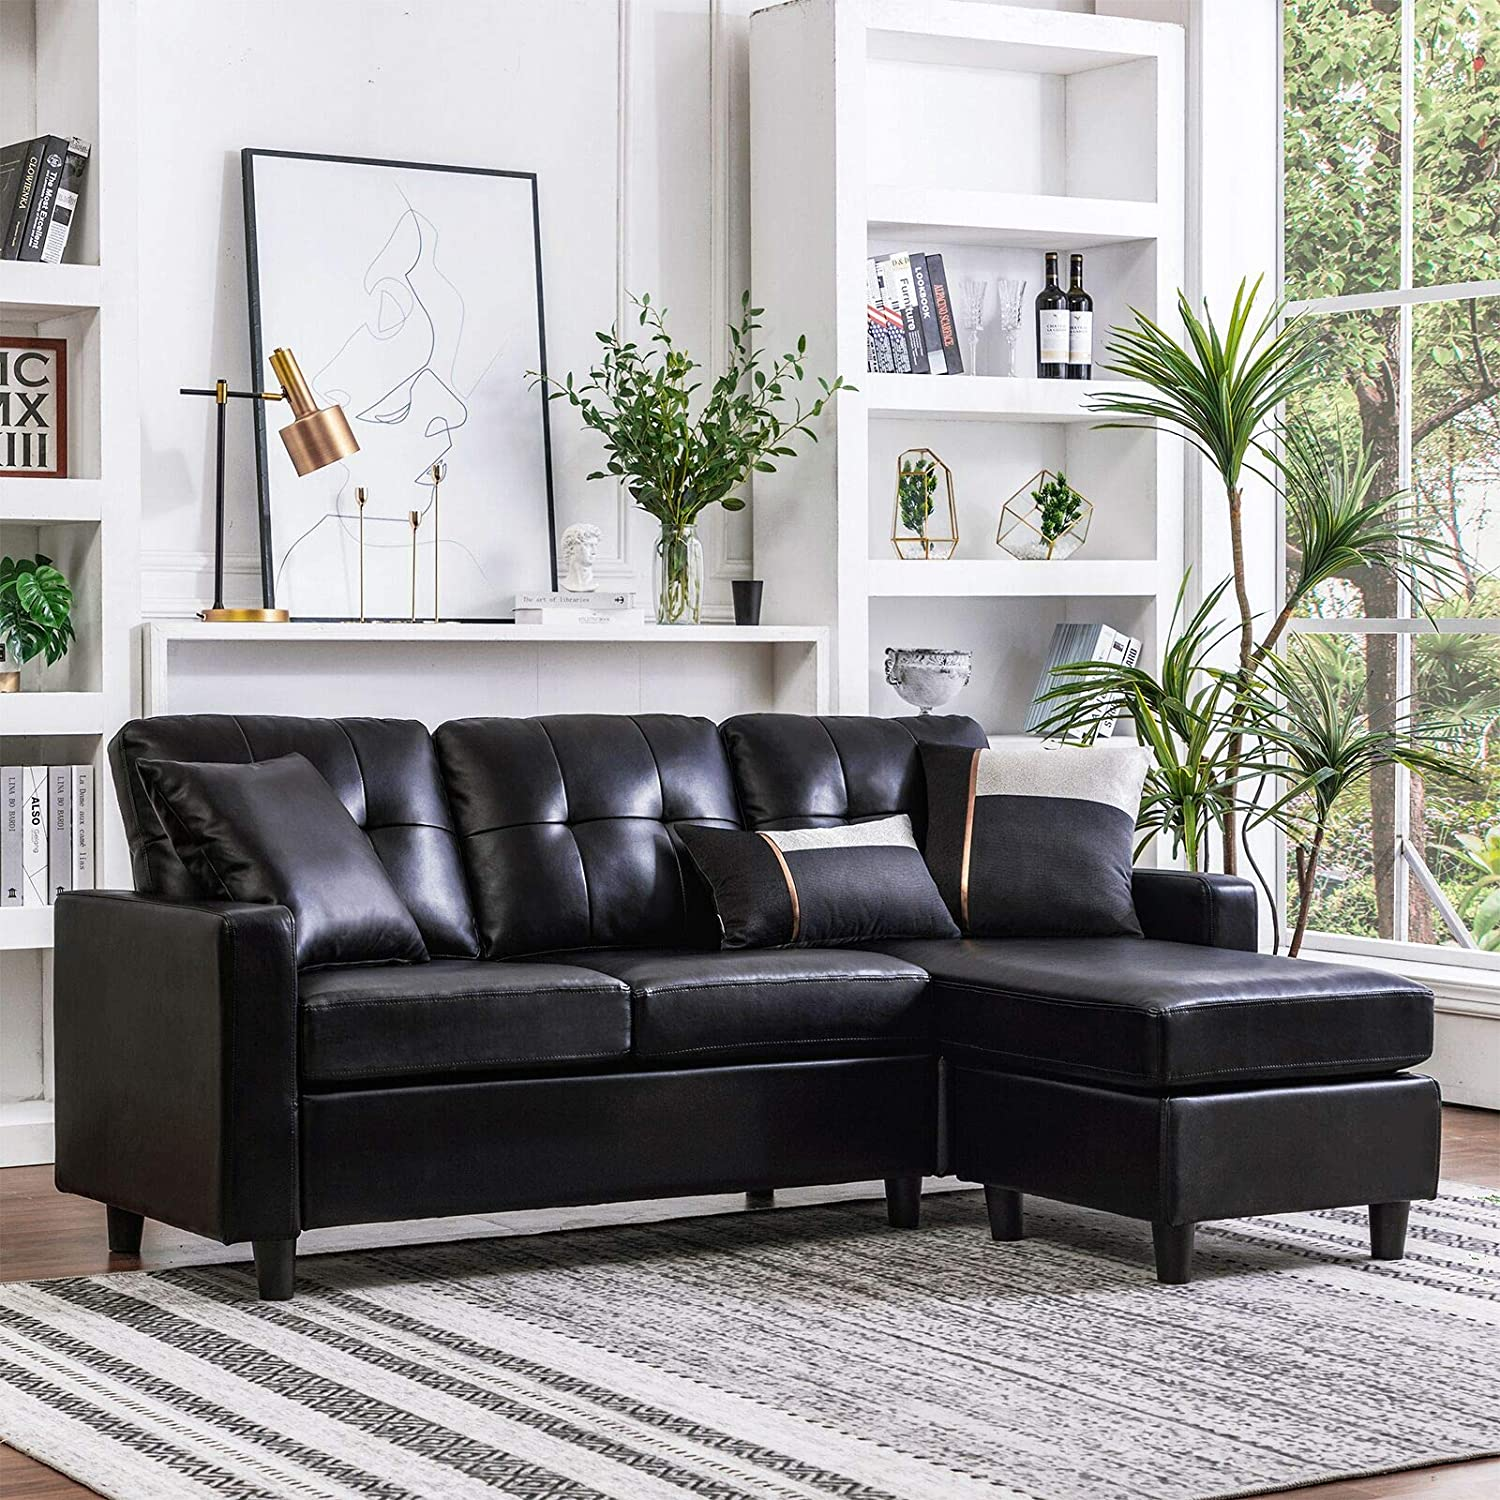 HONBAY leather sofa set for living room